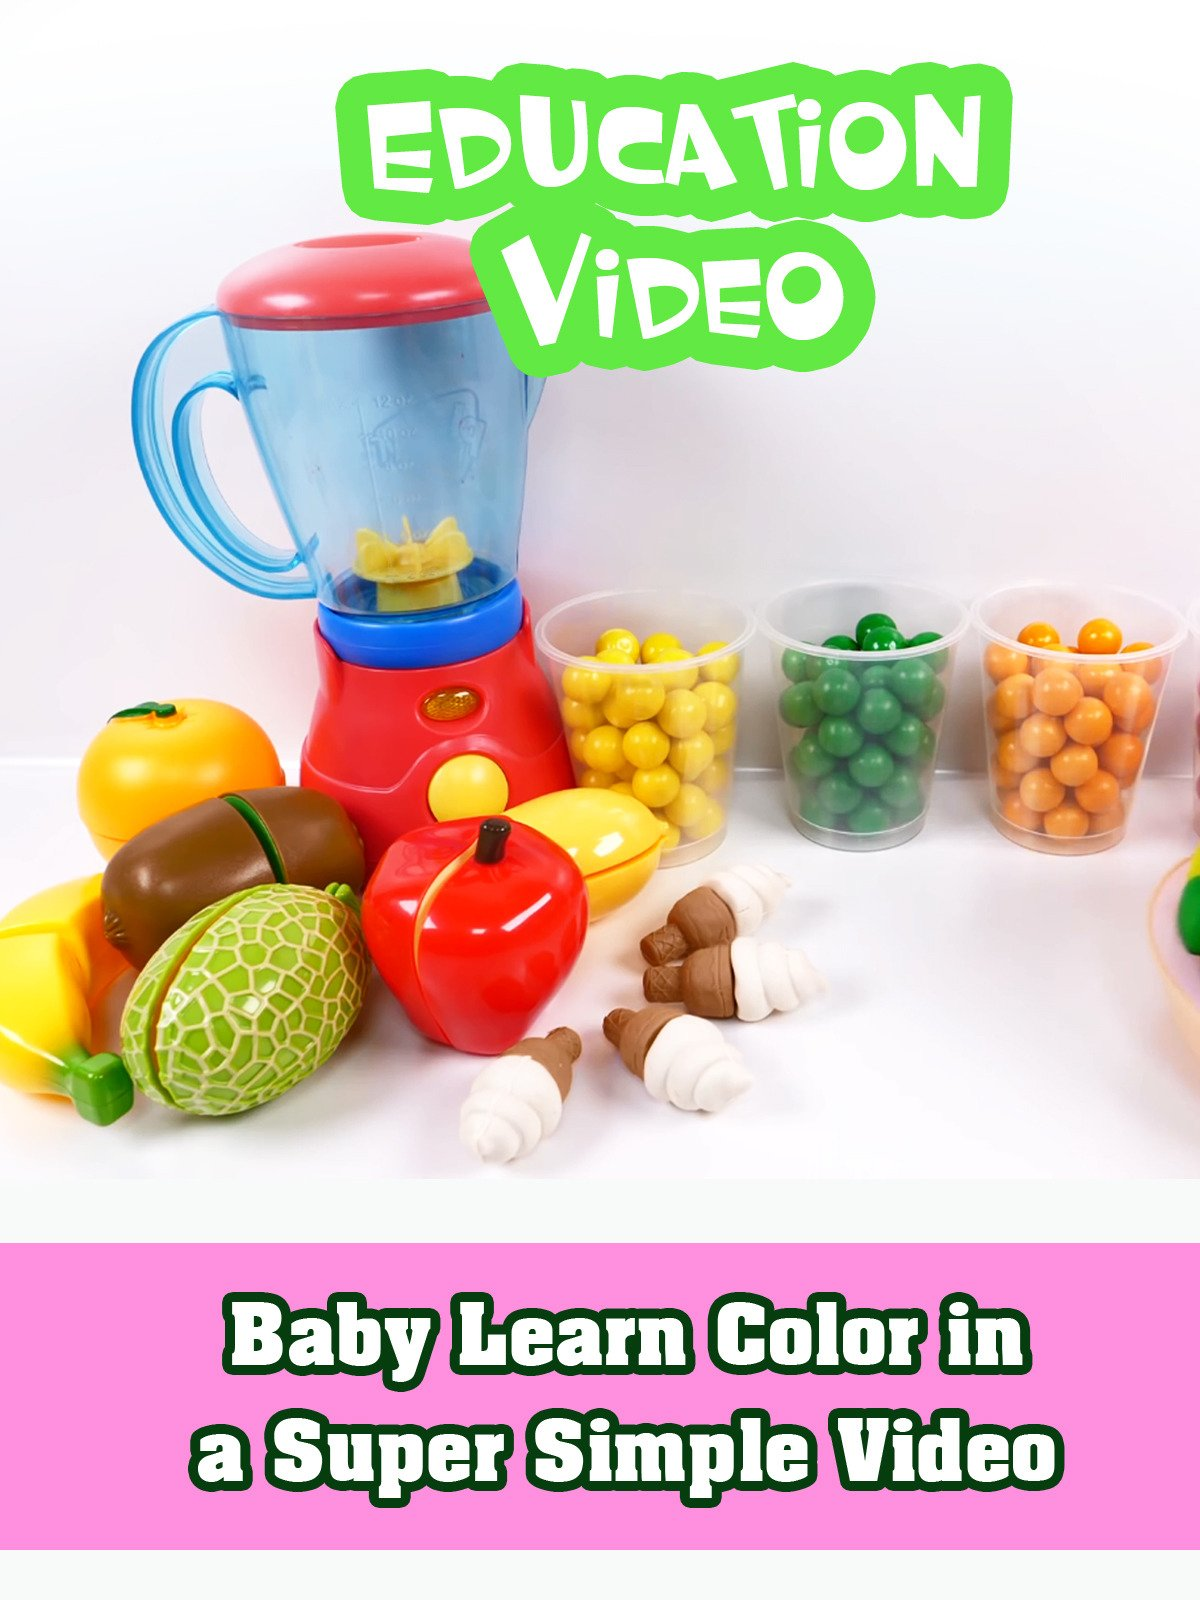 Baby Learn Color in a Super Simple Video